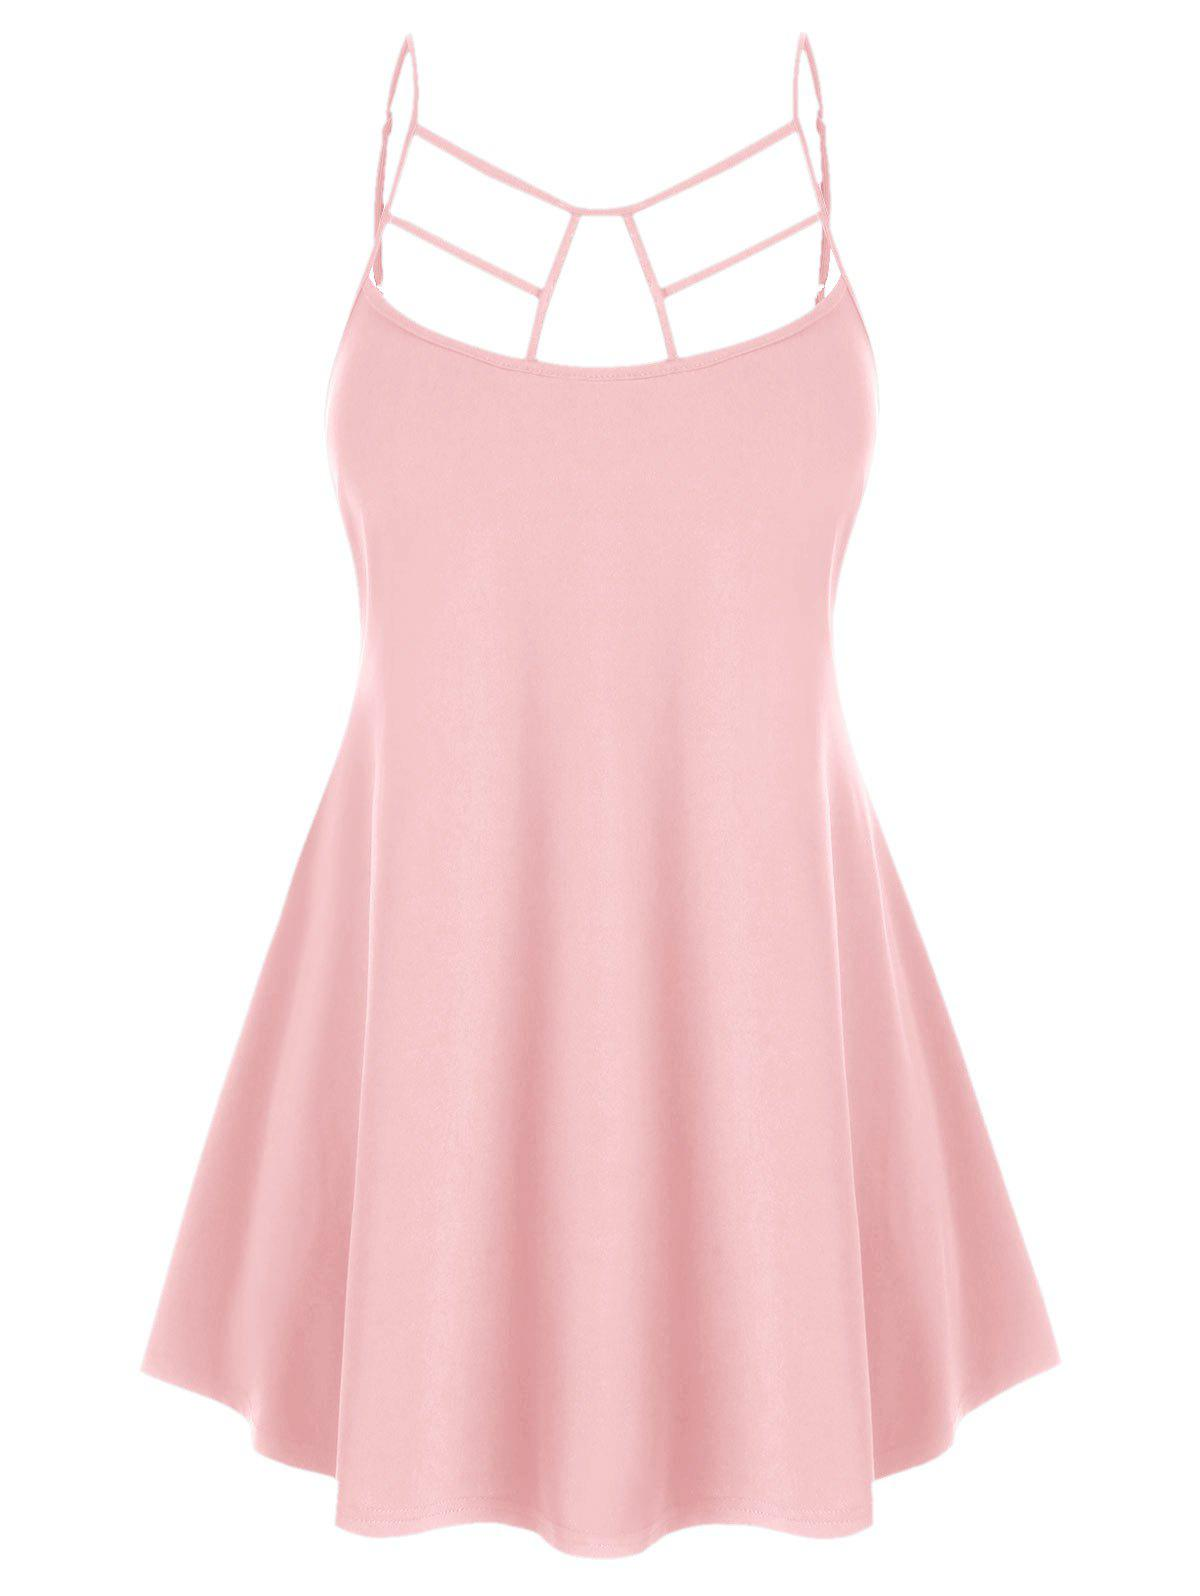 Plus Size Cut Out Swing Cami Top фото